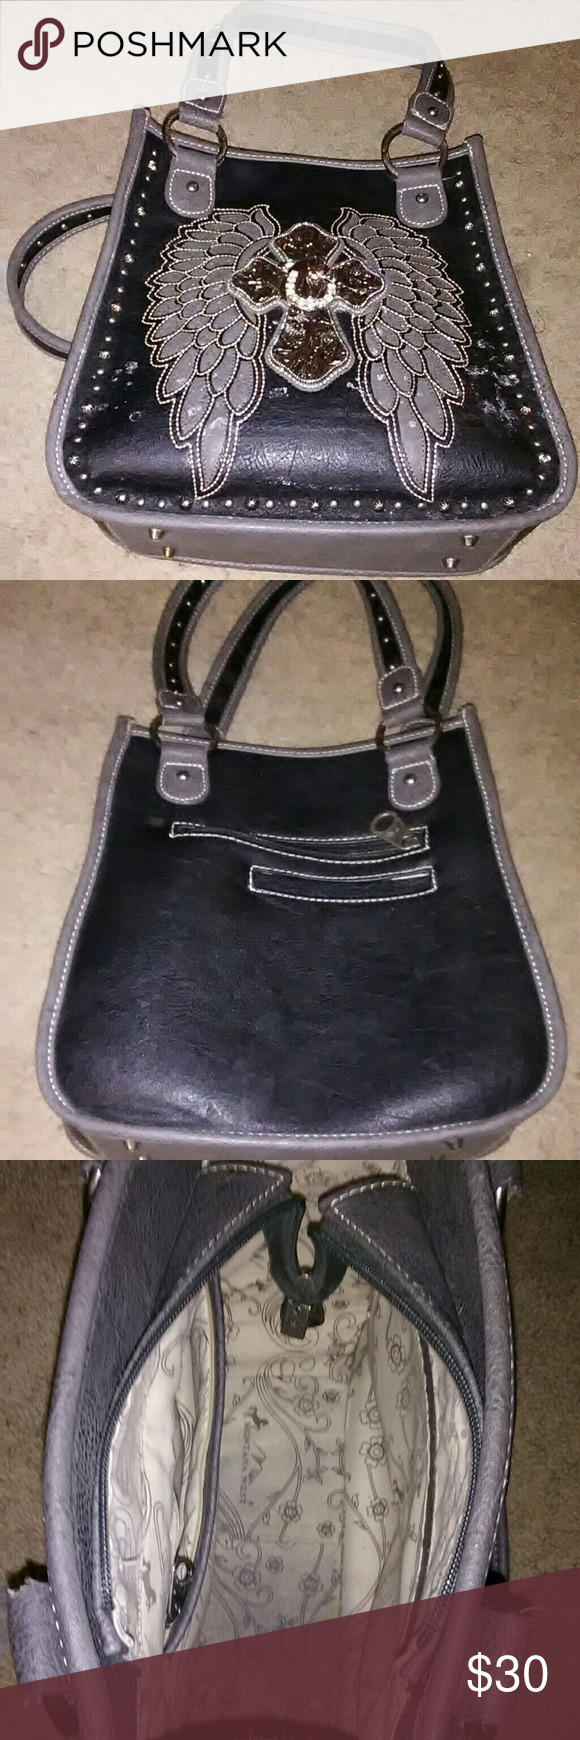 Bling purse Montana West blingy purse. GUC. Zipper on inside pocket is broke. Other than that in really good condition. Montana West Bags Shoulder Bags